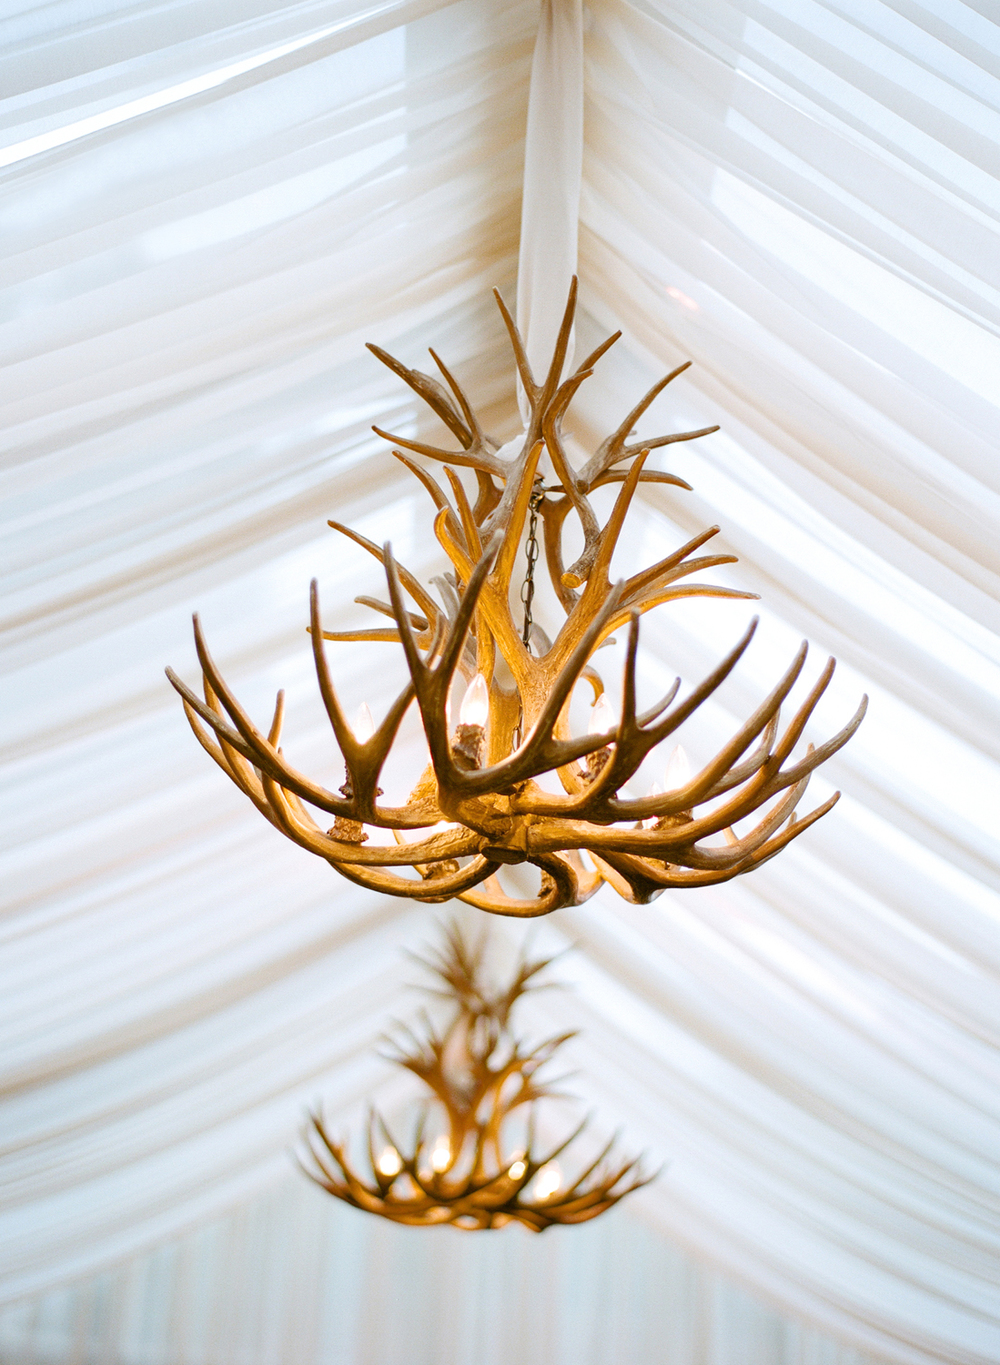 Antler Chandeliers Inside White Tent